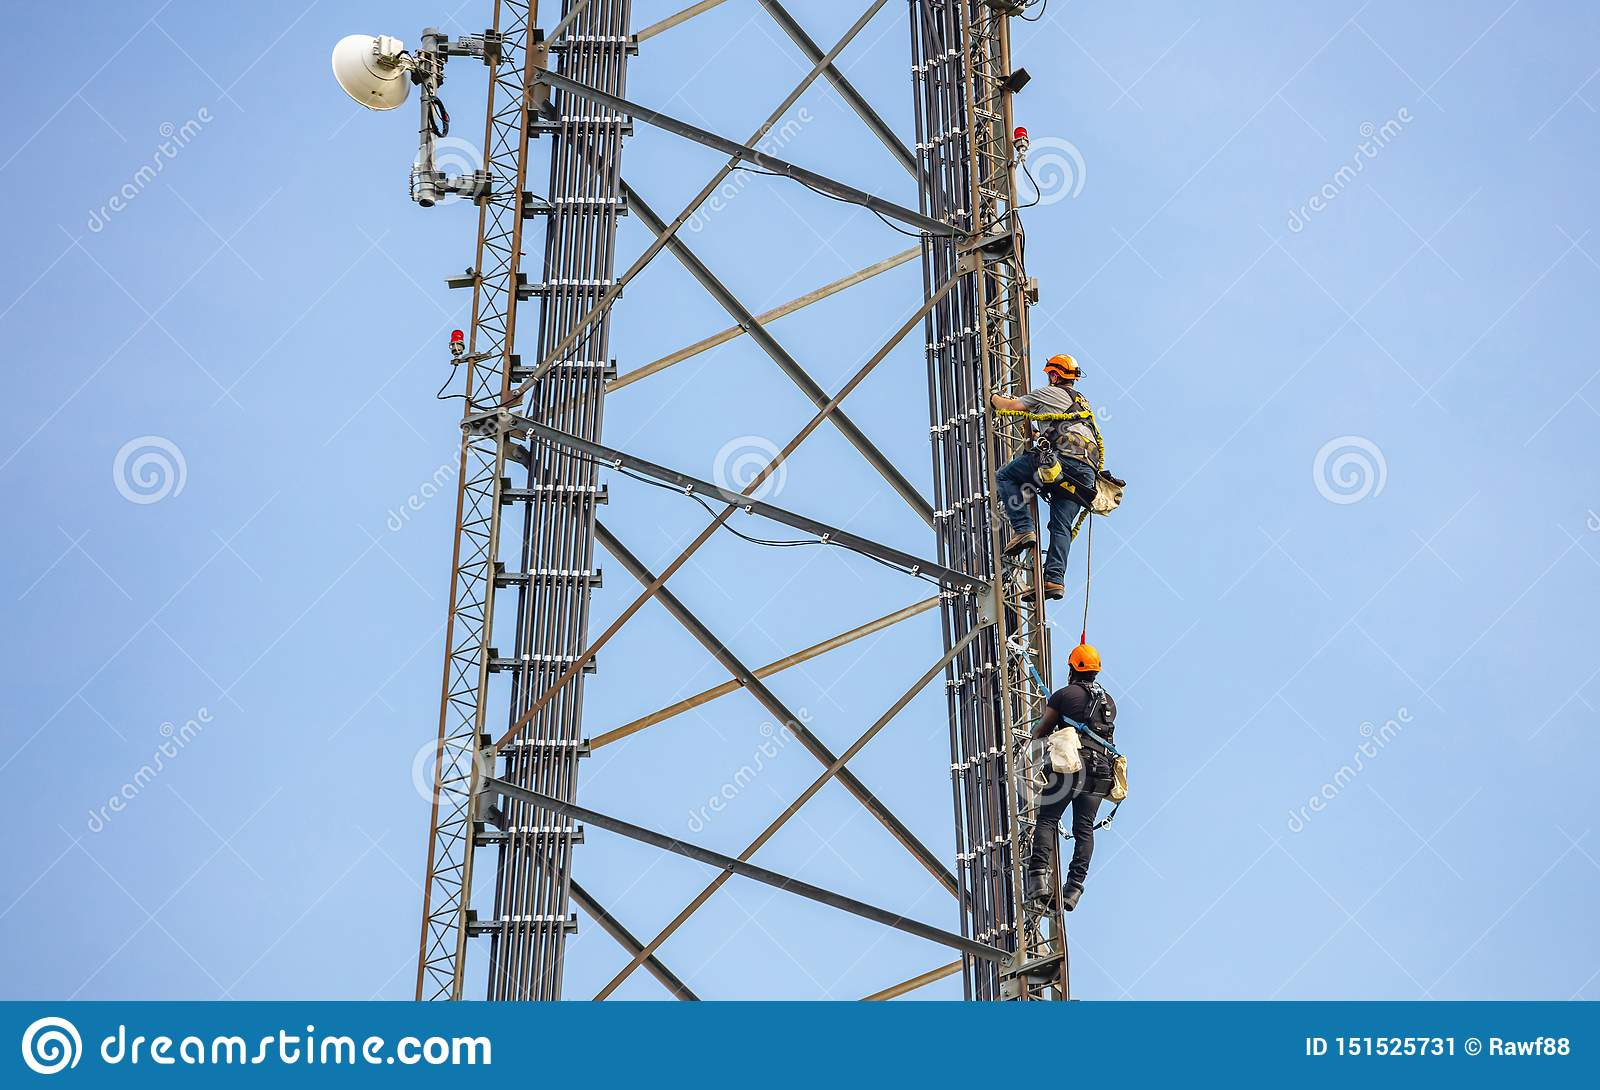 223 Cell Tower Climbing Photos Free Royalty Free Stock Photos From Dreamstime